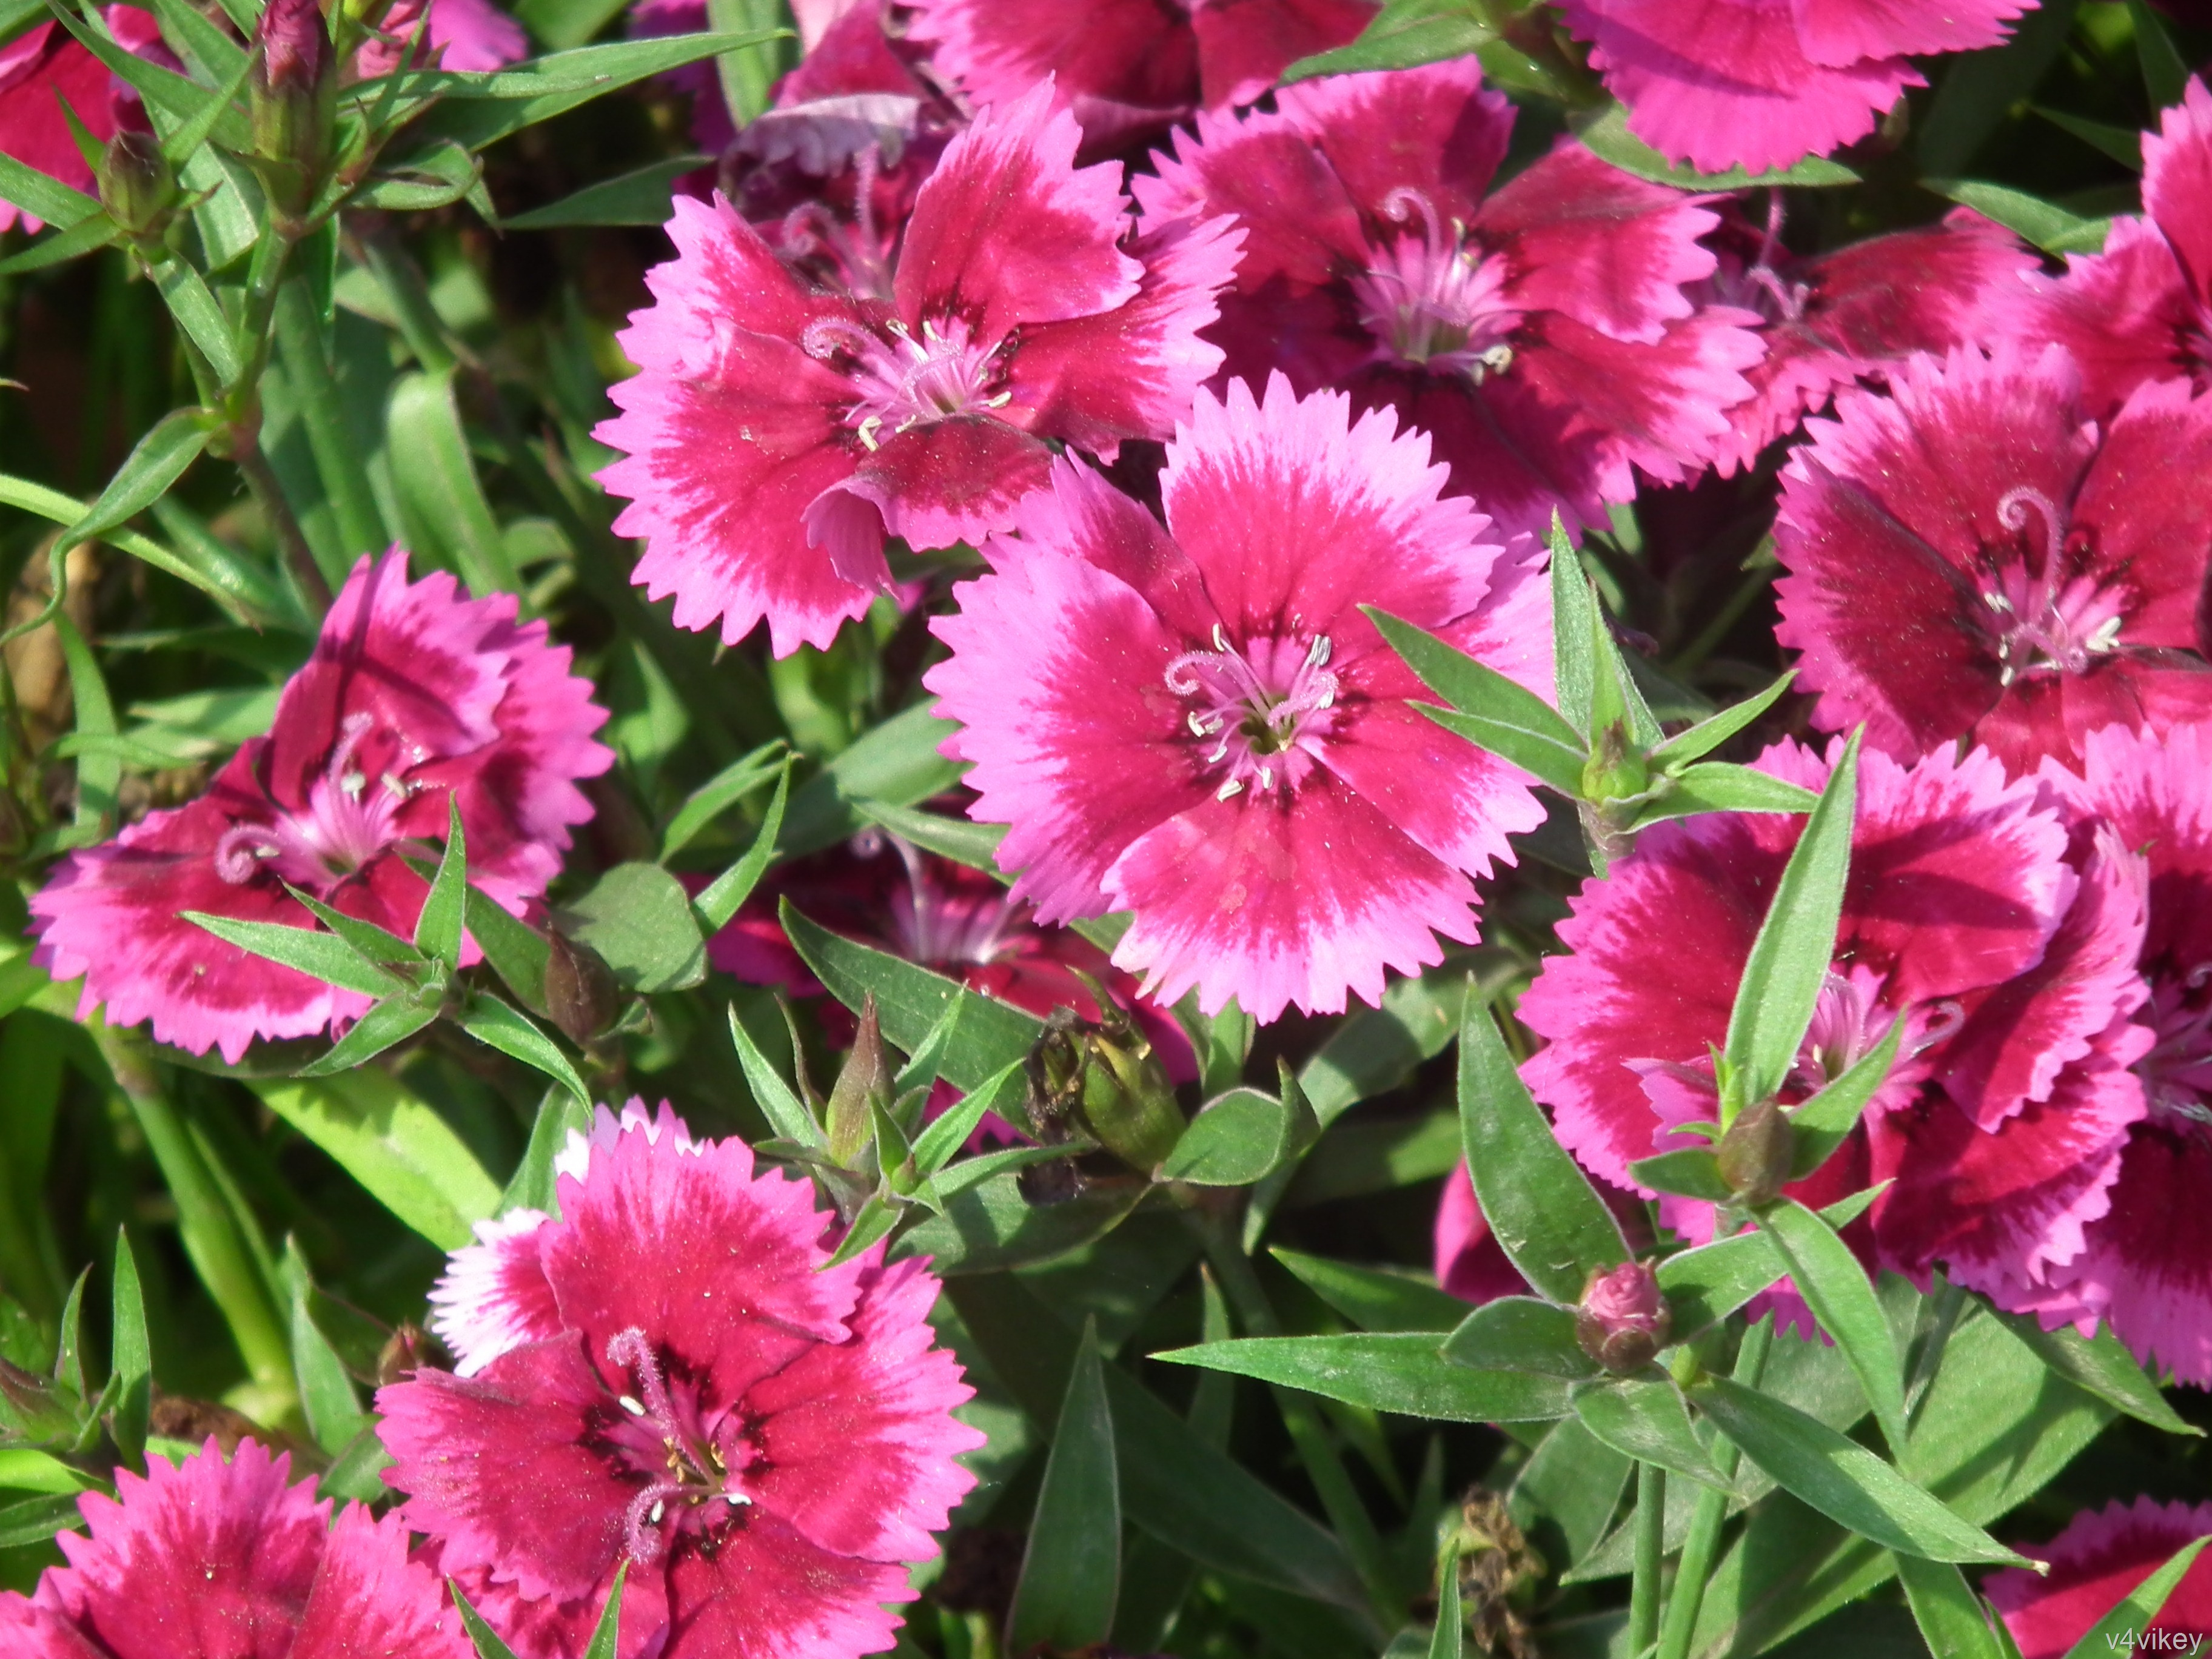 Free photo frilly pink flower pink plant nature free download frilly pink flower mightylinksfo